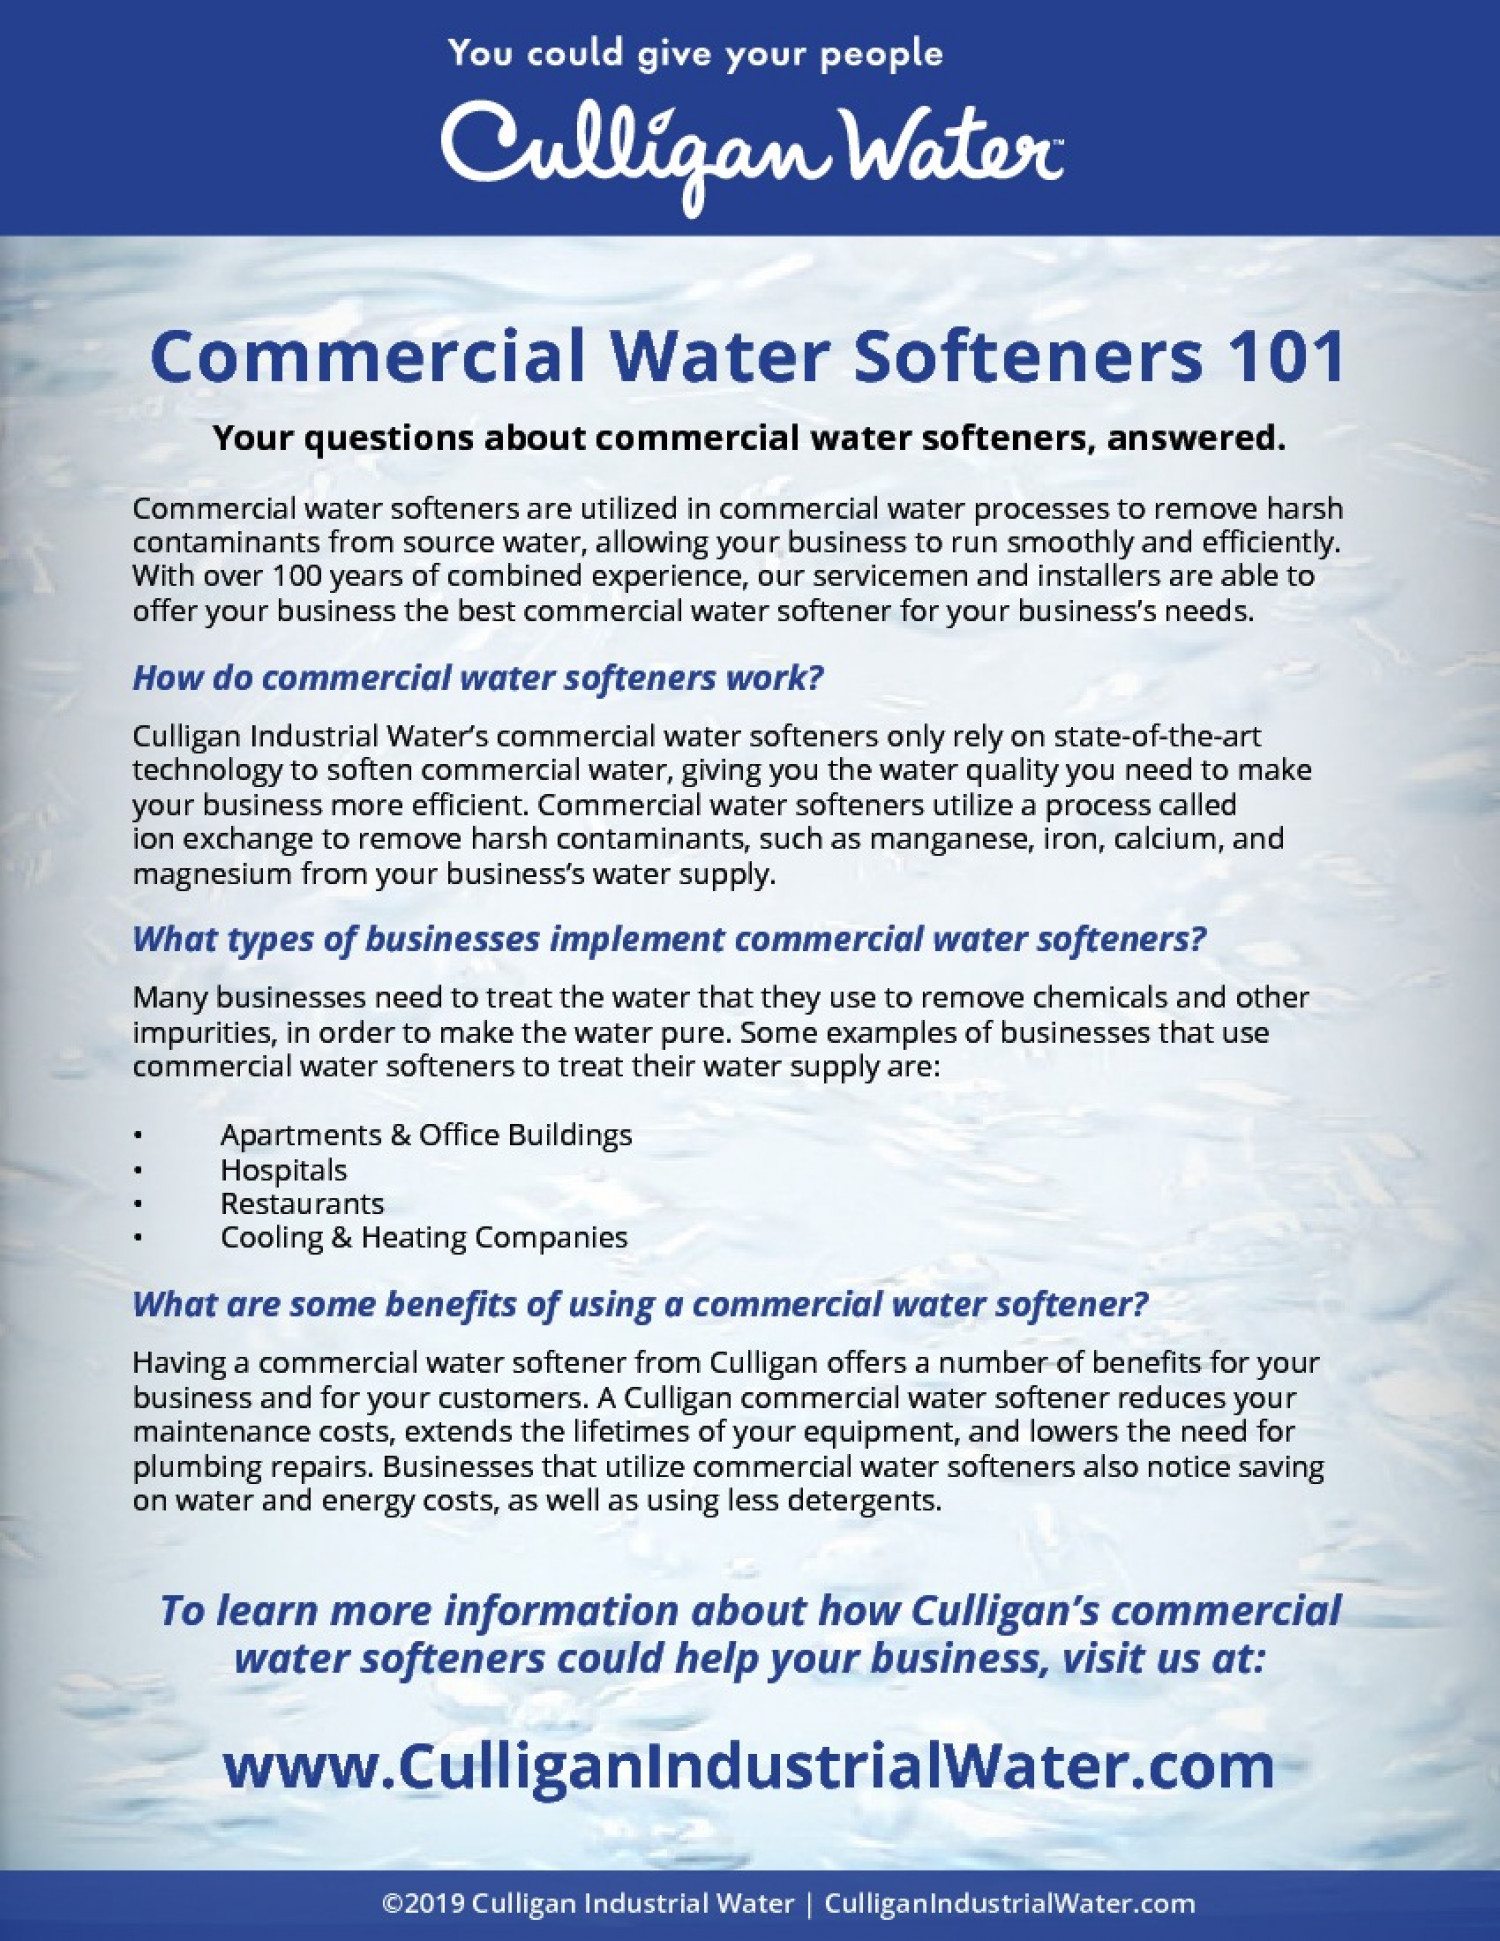 Commercial Water Softeners Infographic